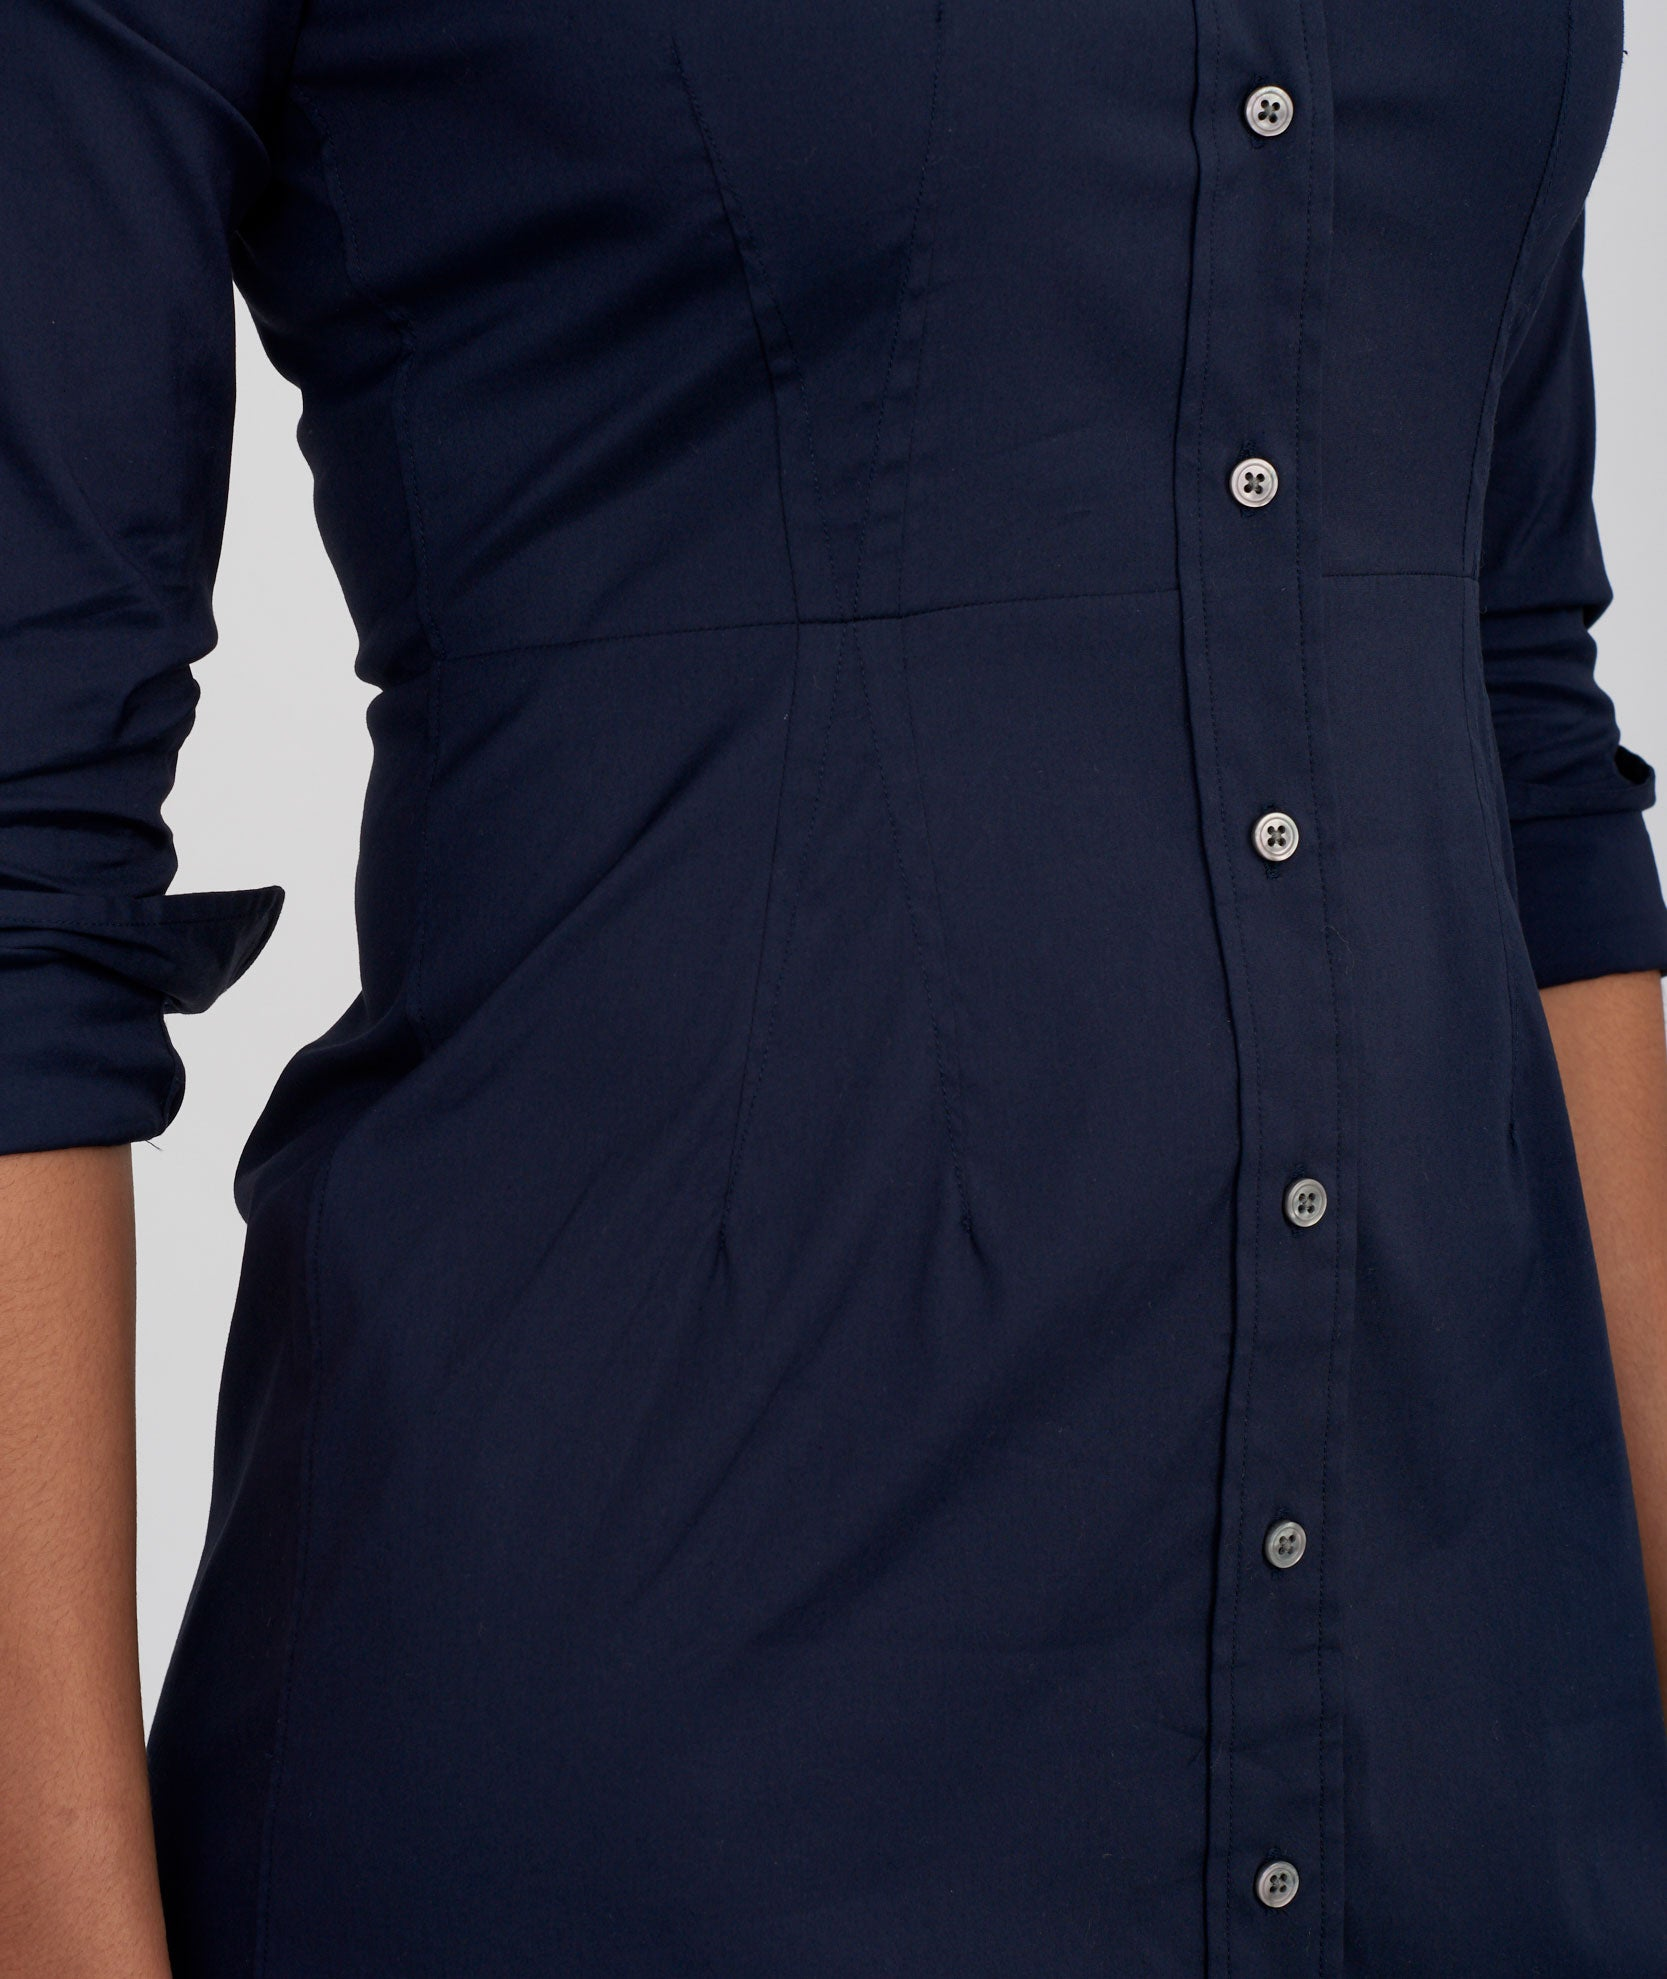 Marisol Navy Shirt Dress Untuckit